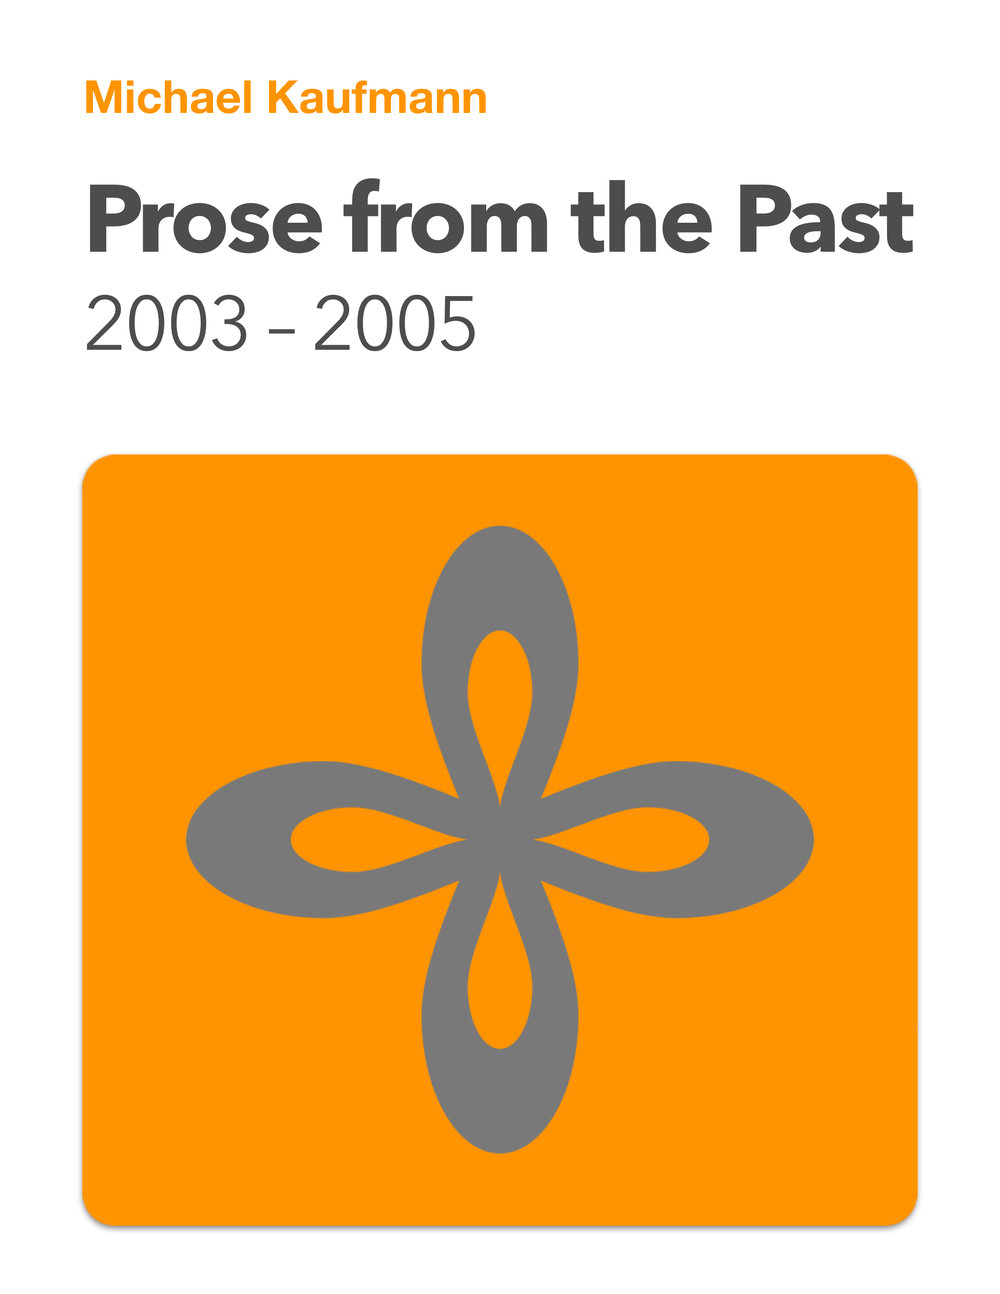 Prose from the Past (cover).jpeg